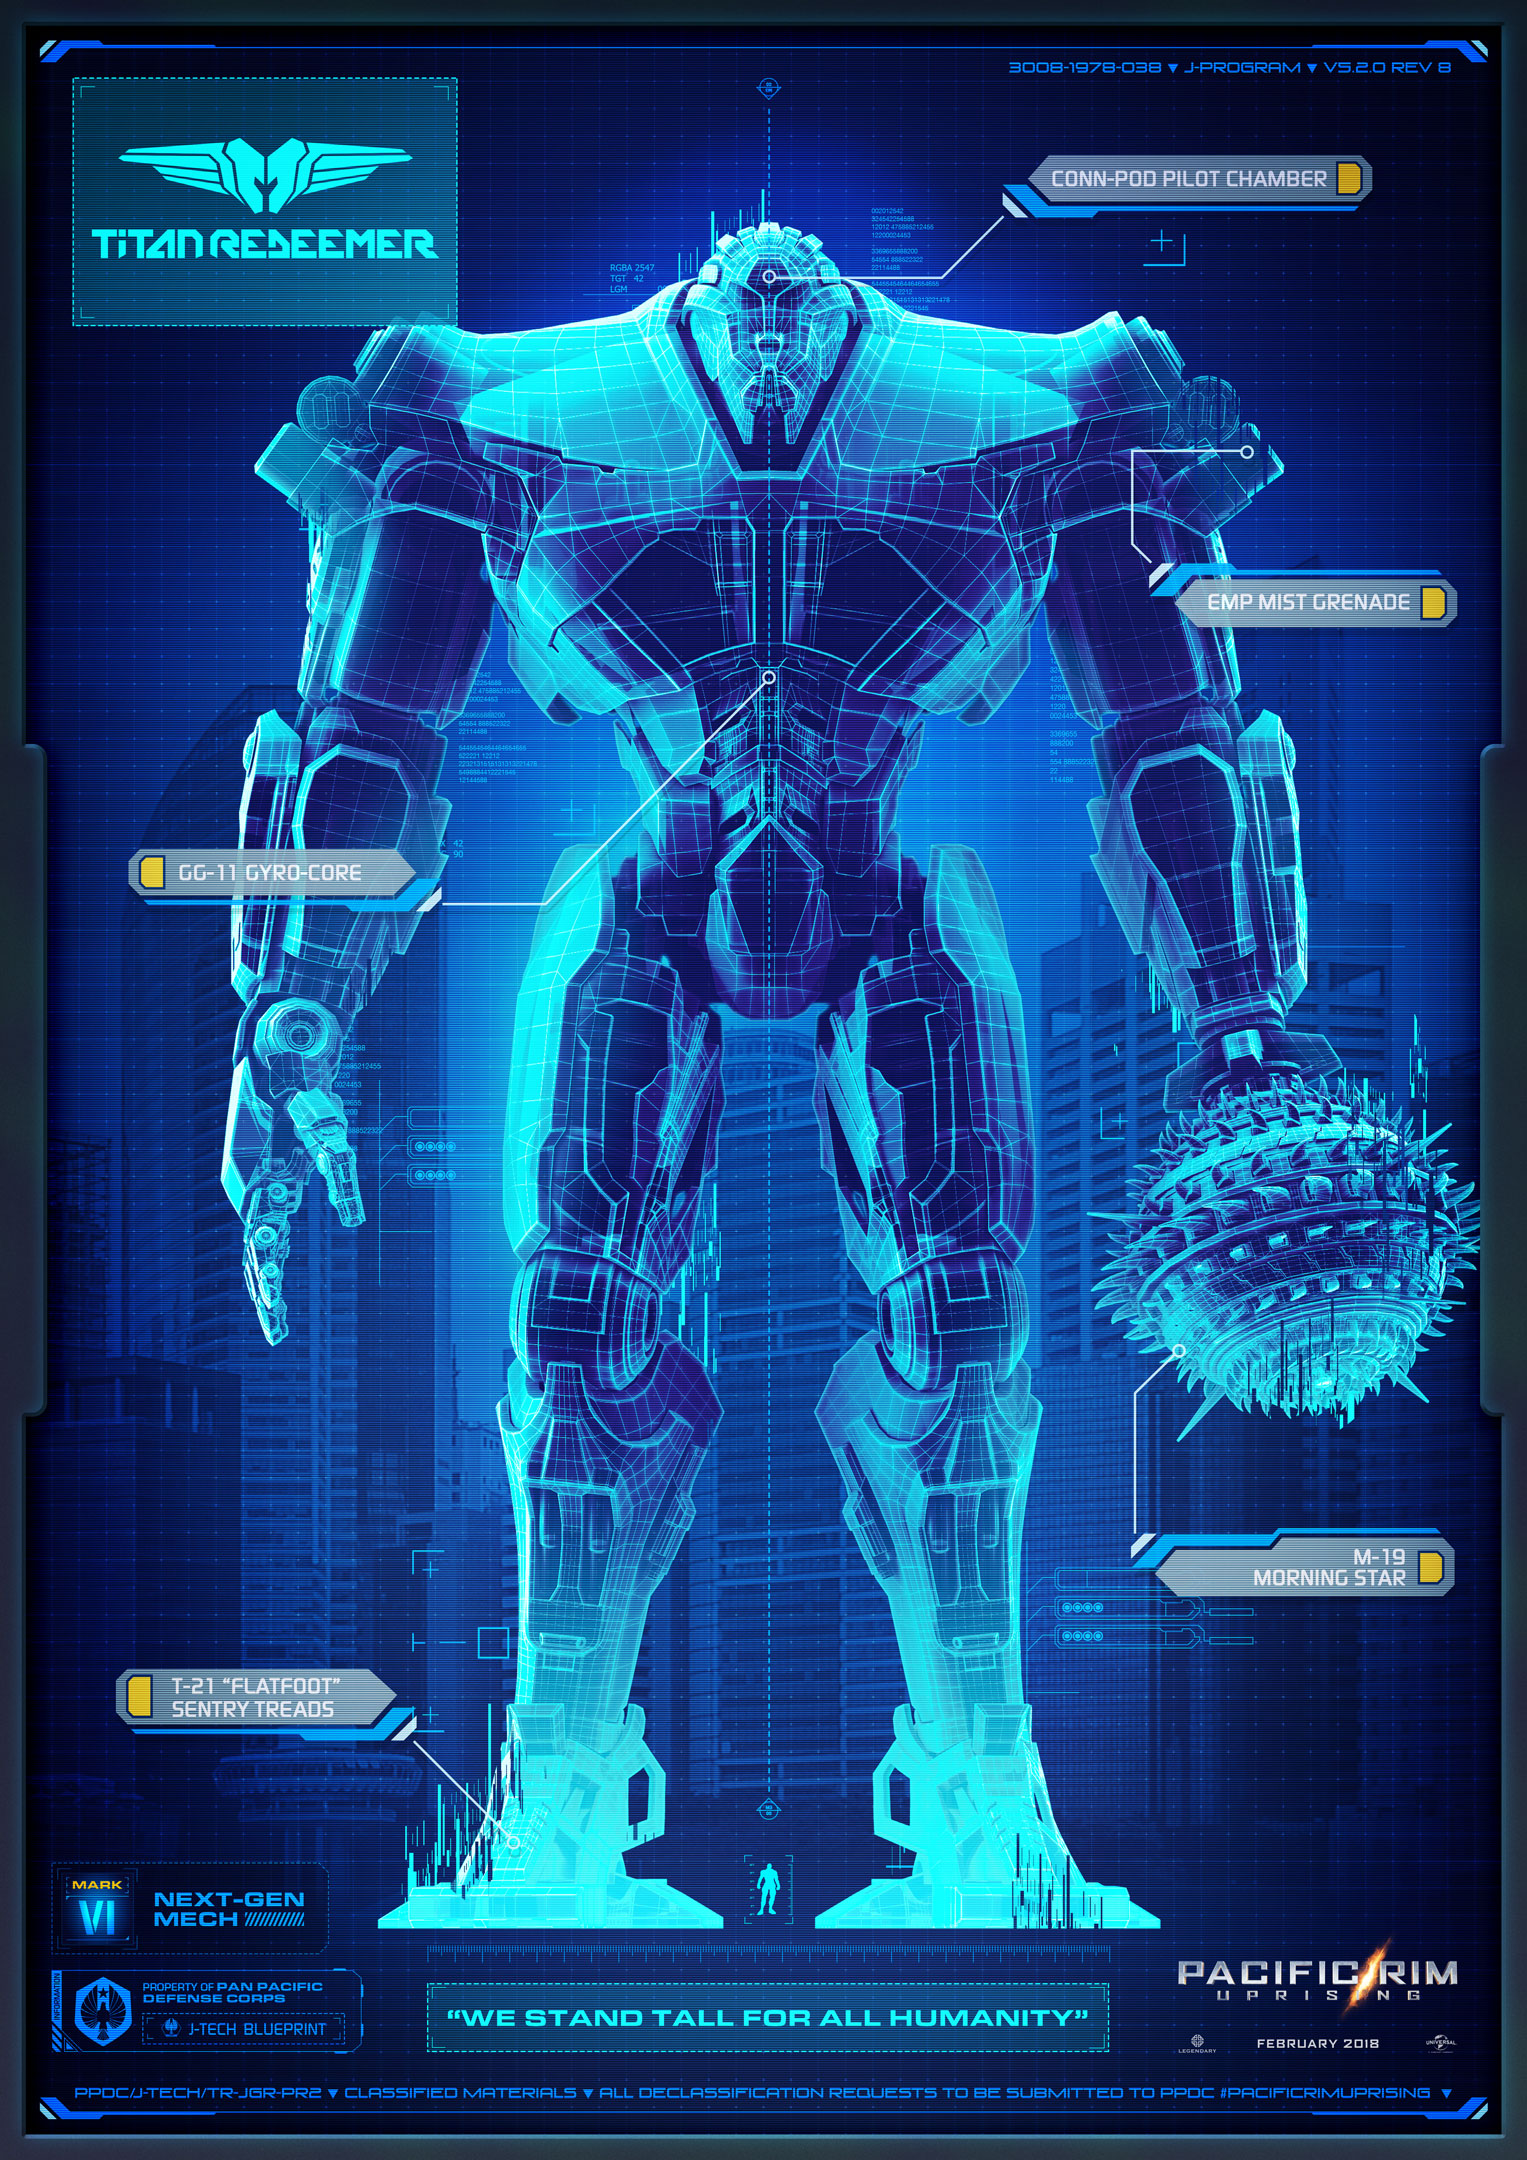 Titan Redeemer | Pacific Rim Wiki | FANDOM powered by Wikia Pacific Rim Blueprints